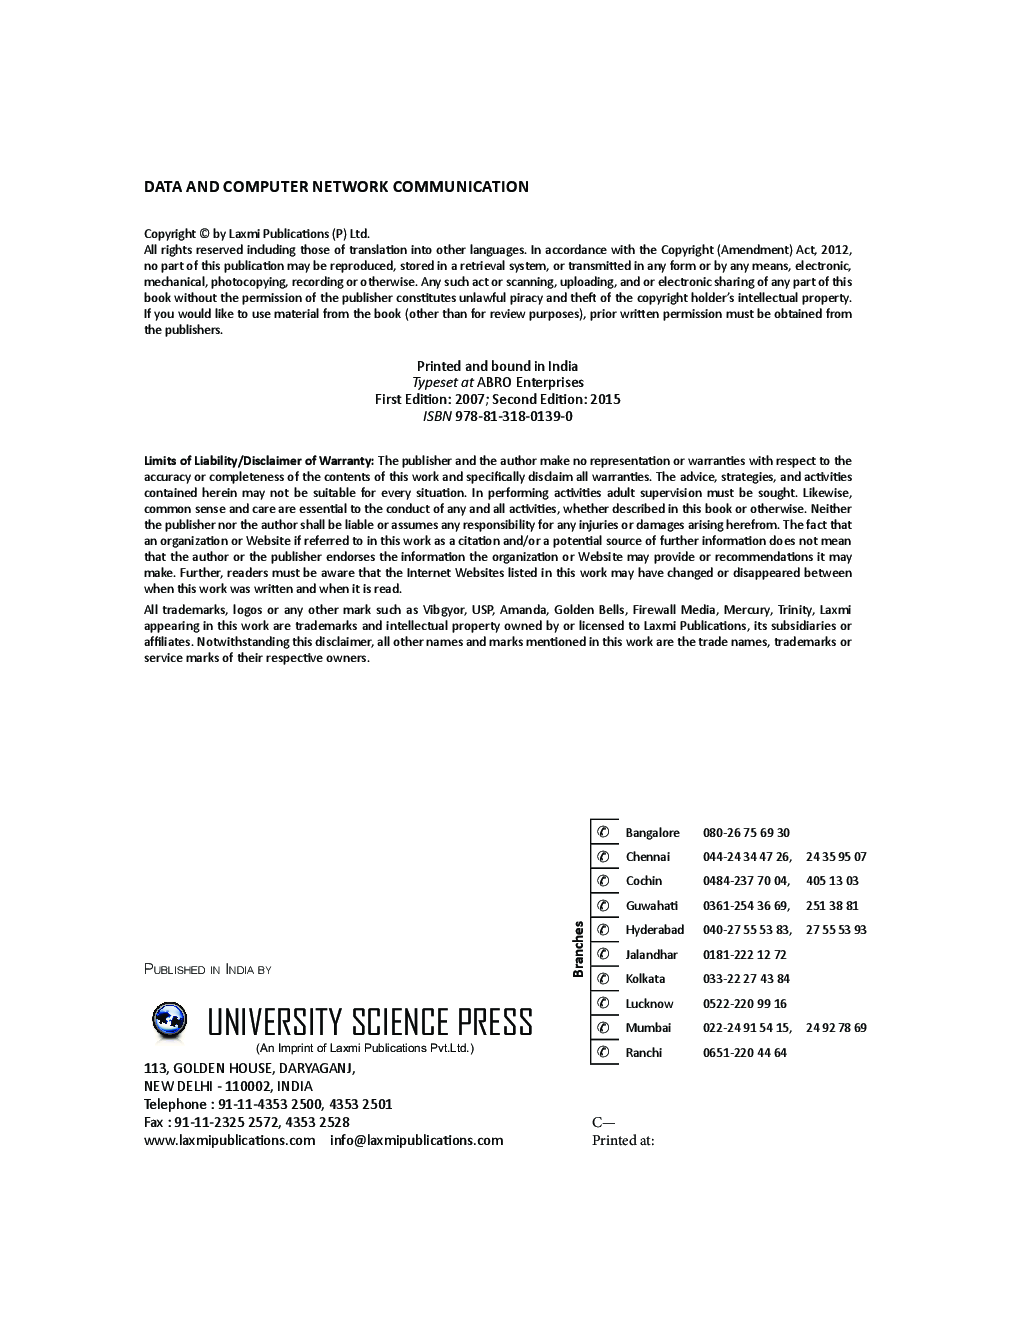 Data And Computer Network Communication - Page 5